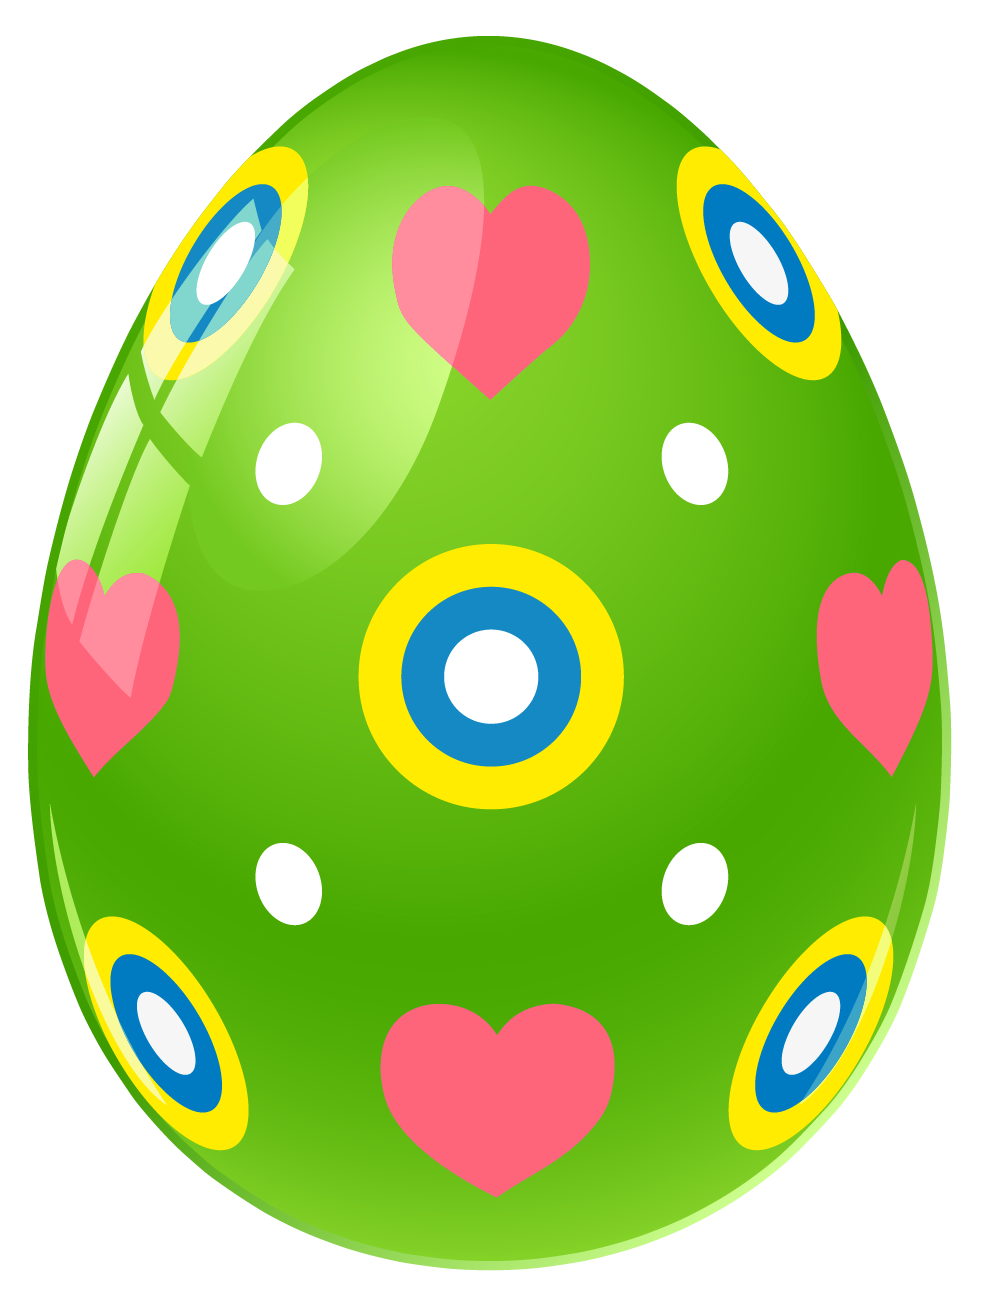 Easter Egg Clipart | Free download on ClipArtMag